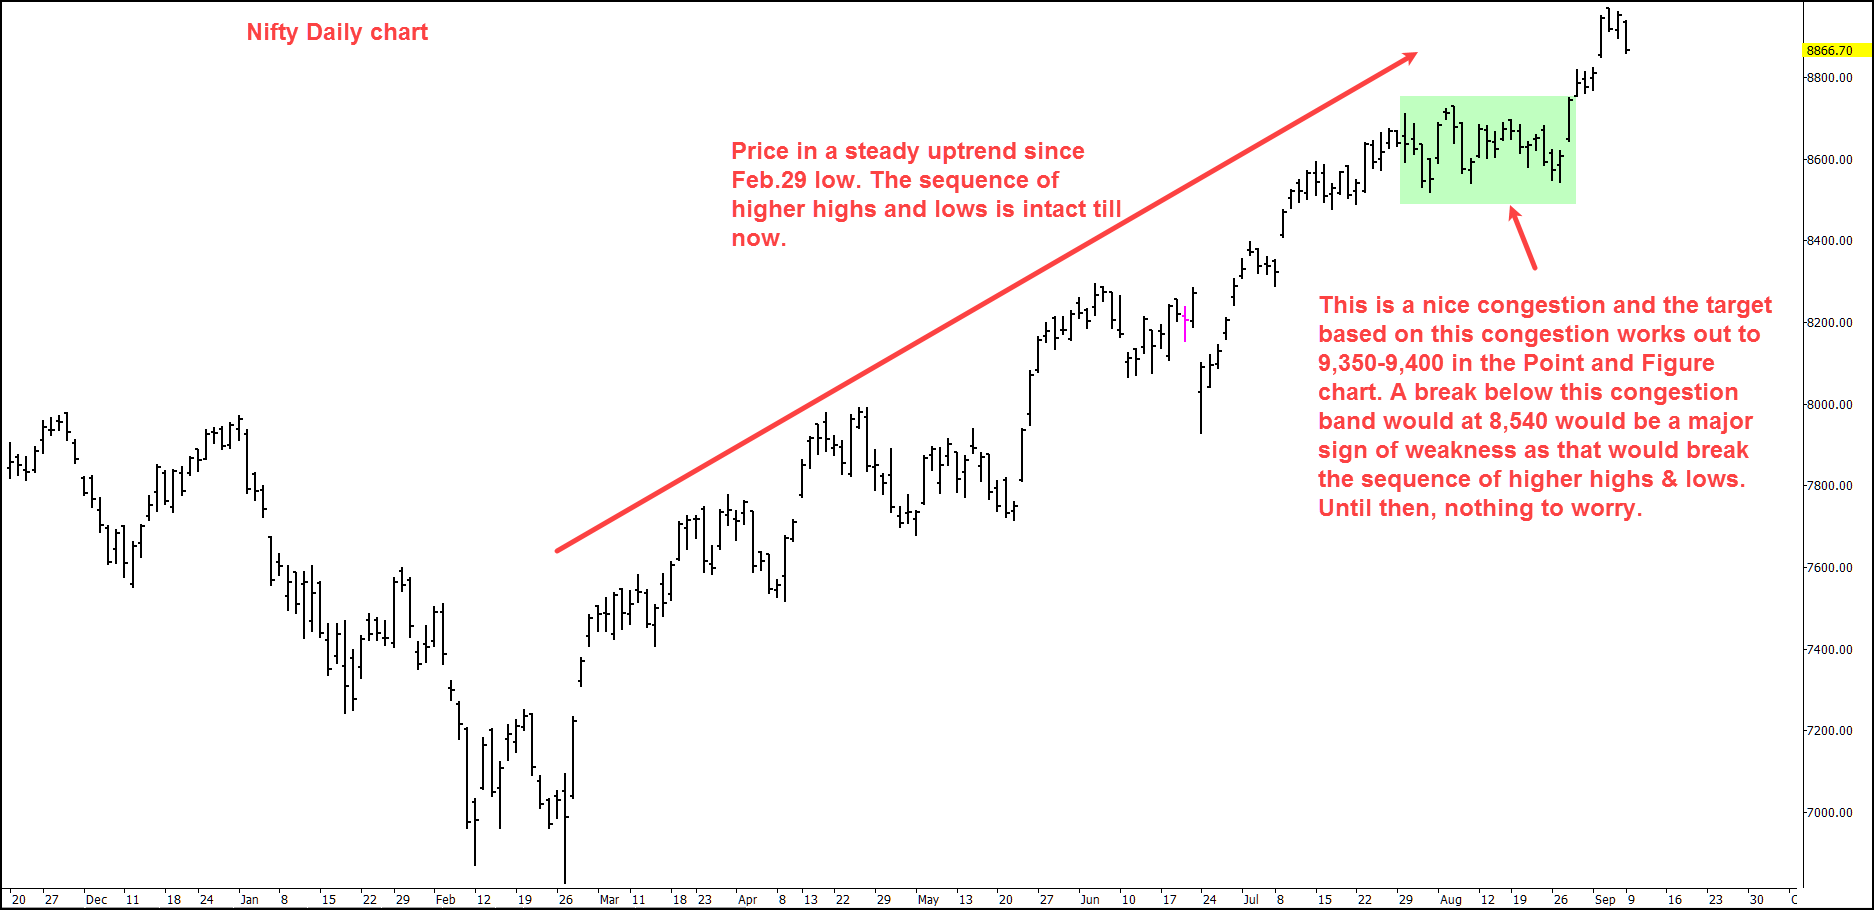 daily-nifty